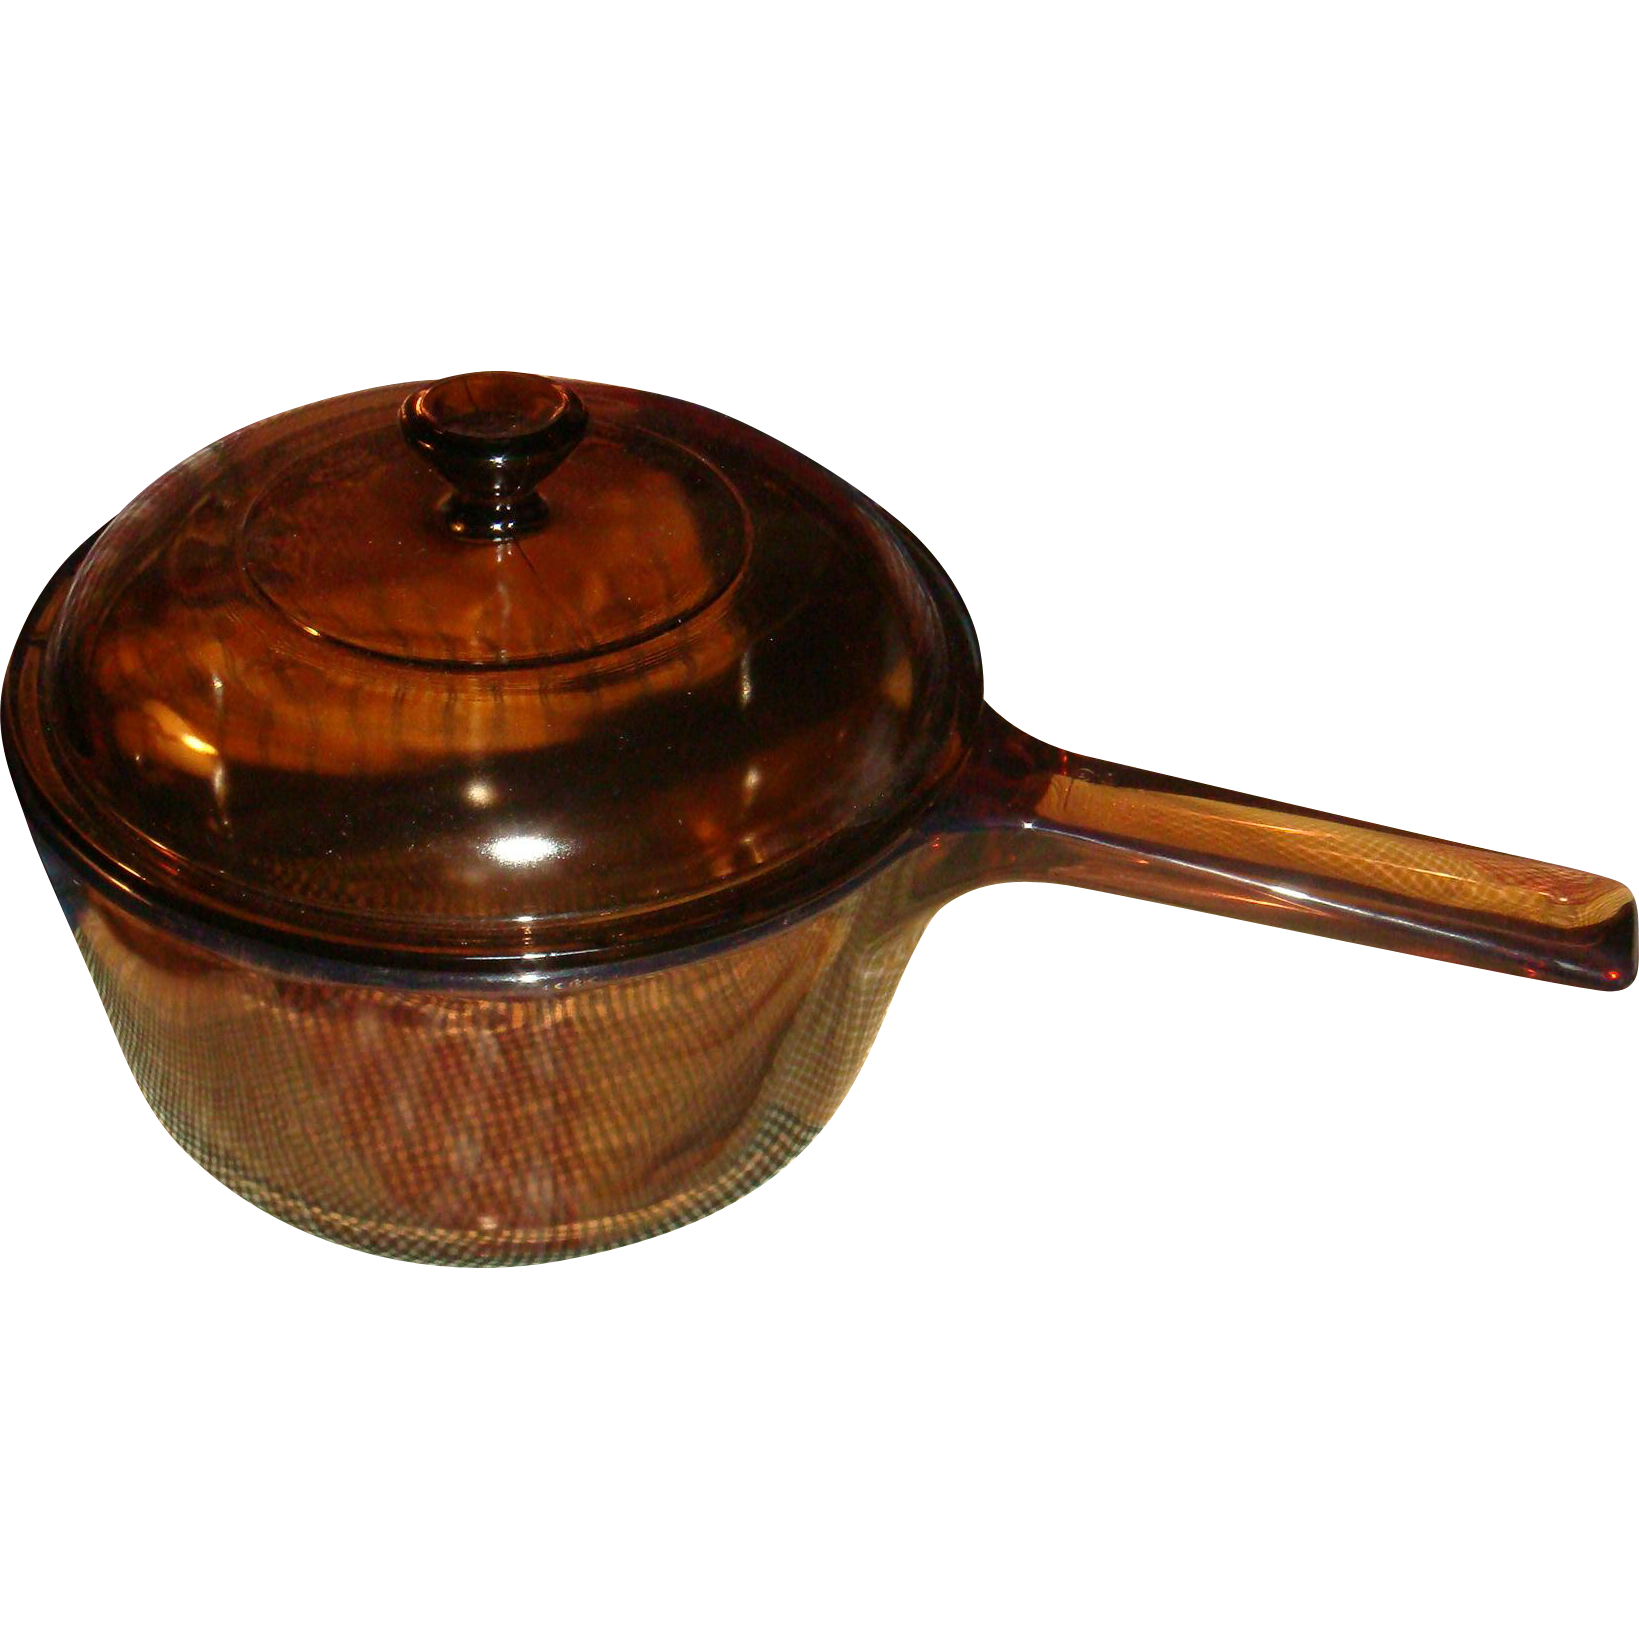 Corning Ware Pyrex Visions Cookware Saucepan With Lid 1.5 L Amber Glass Collectible